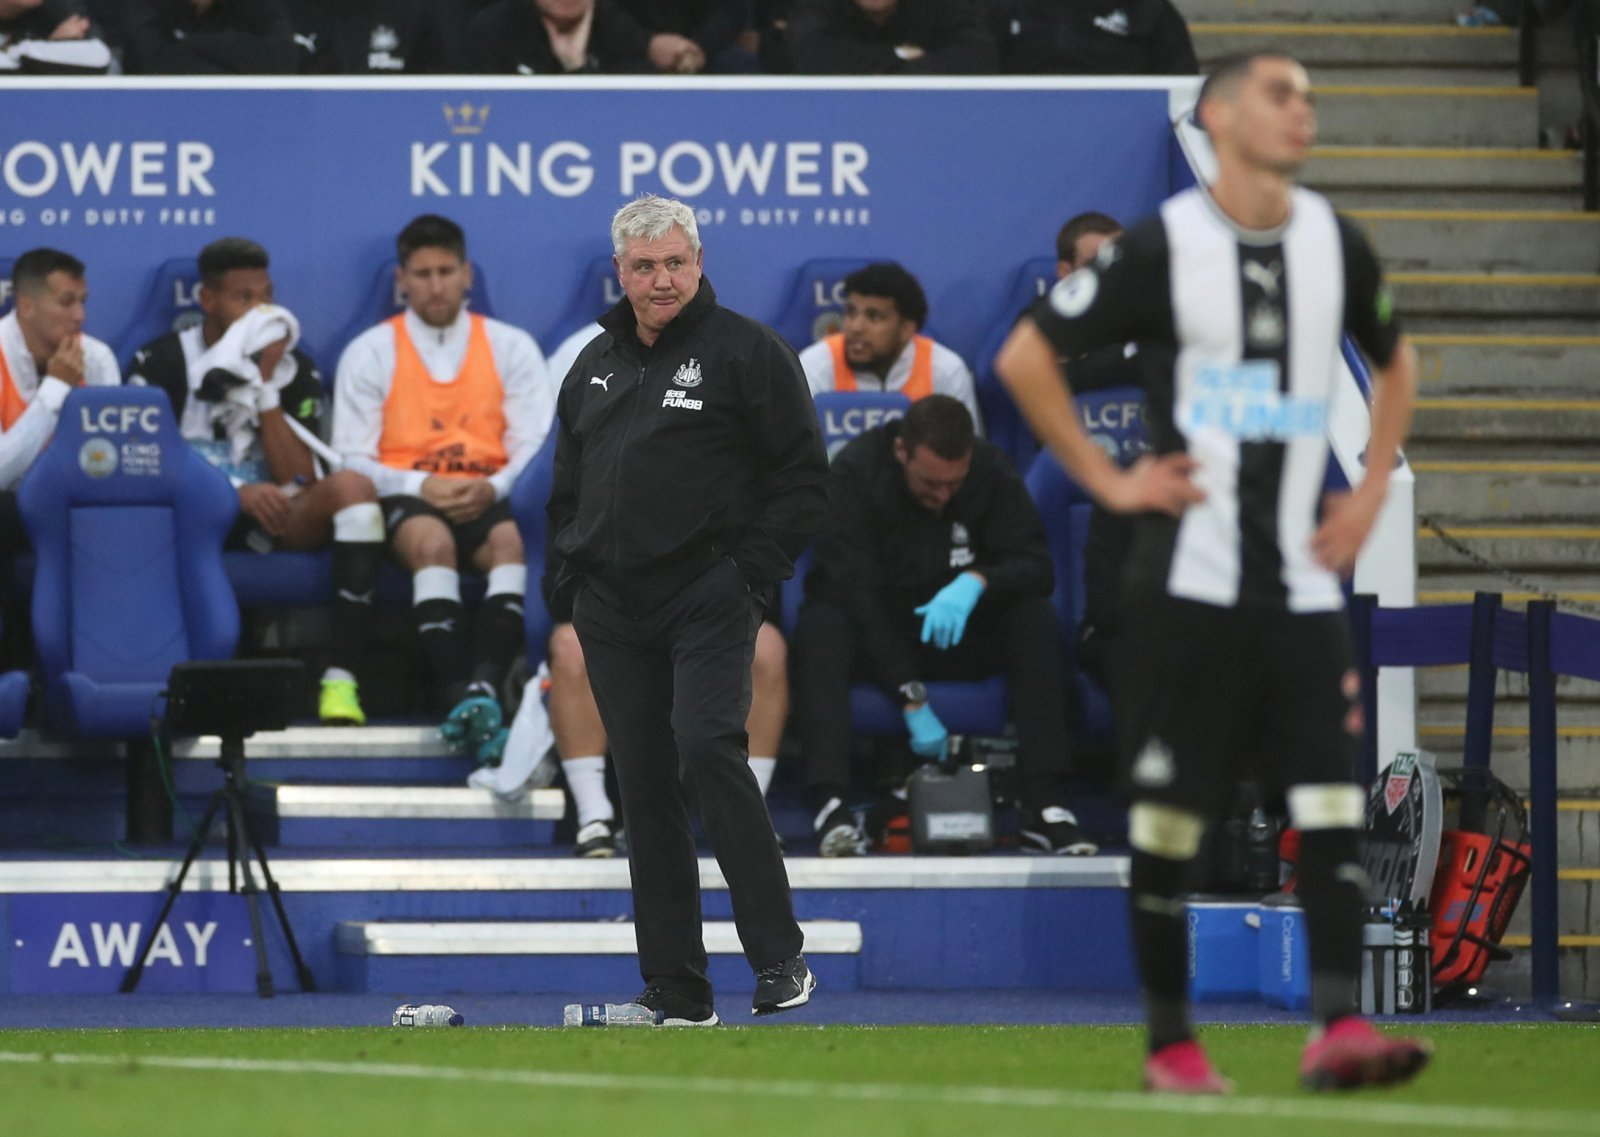 Newcastle United: Fans react after Steve Bruce claims Toon offered a 'complete surrender' at Leicester City in 5-0 trashsing